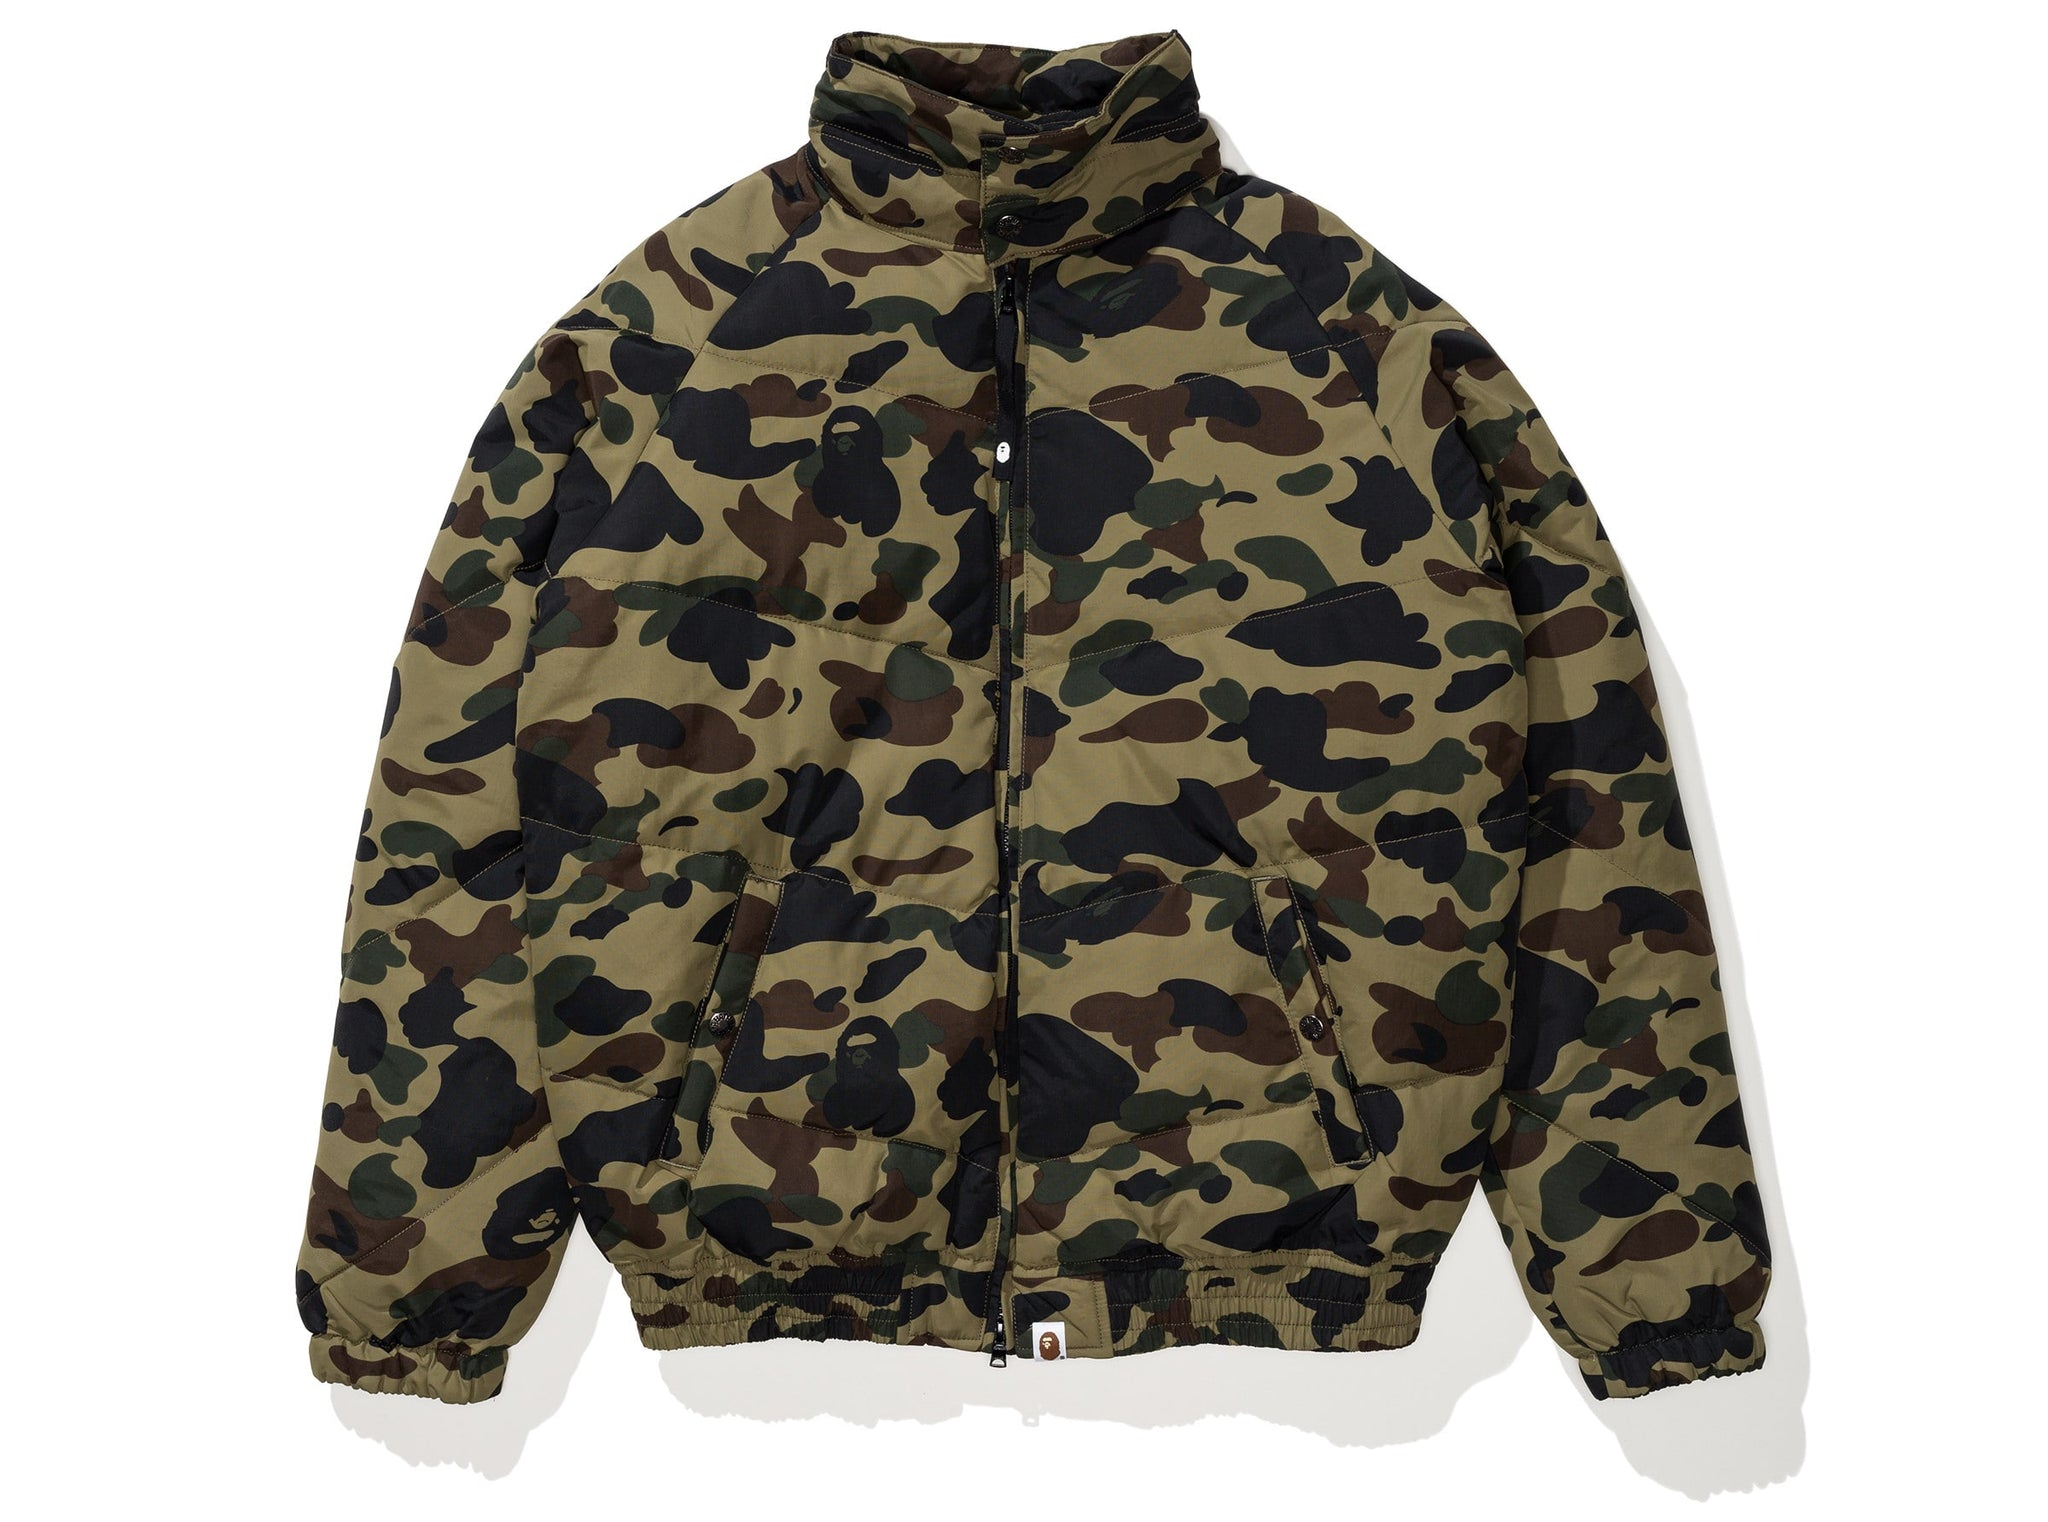 BAPE 1ST CAMO DOWN JACKET - GREEN